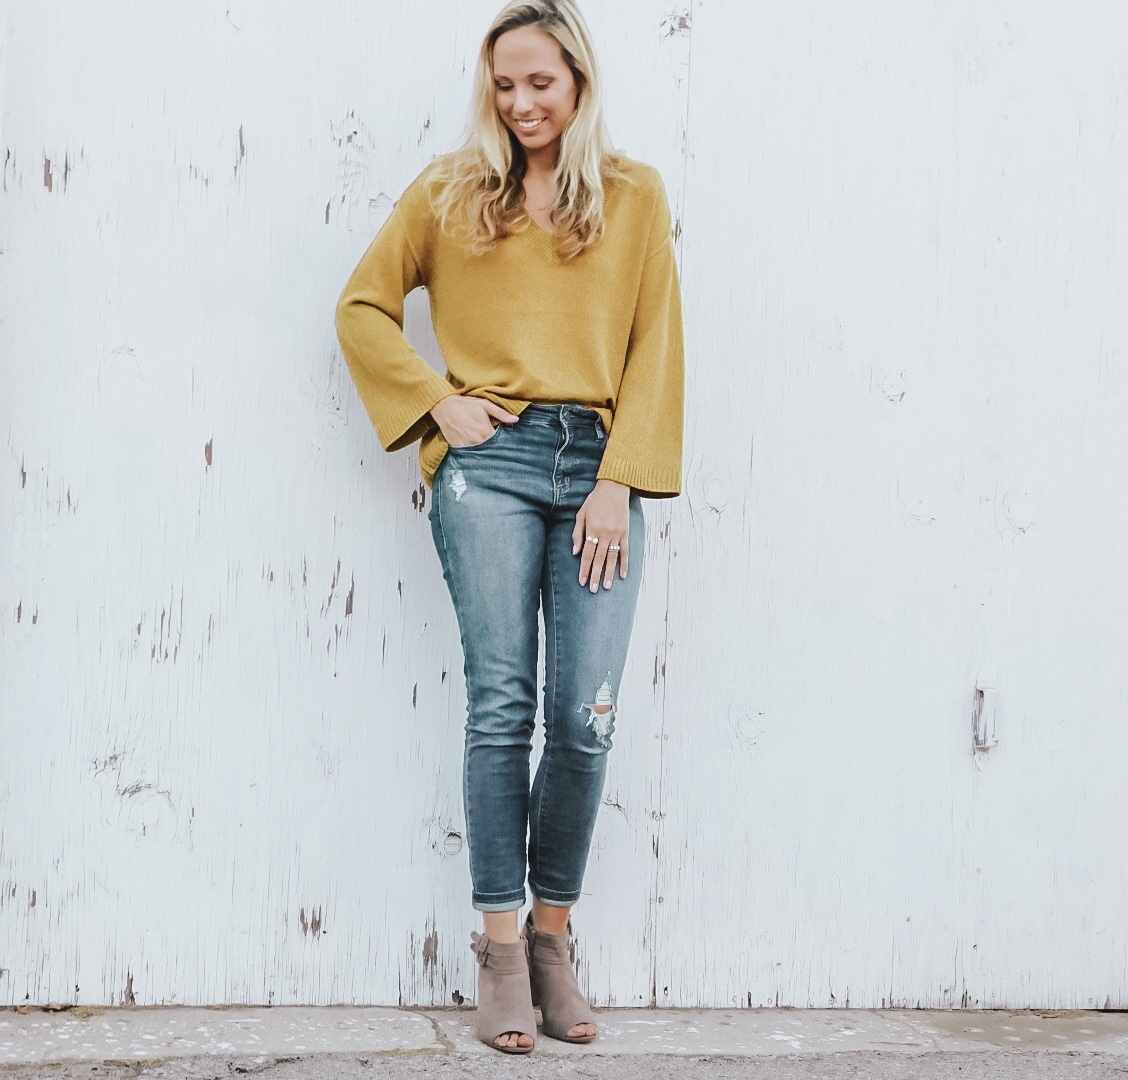 It's Finally Fall – Mustard Sweater and Jeans